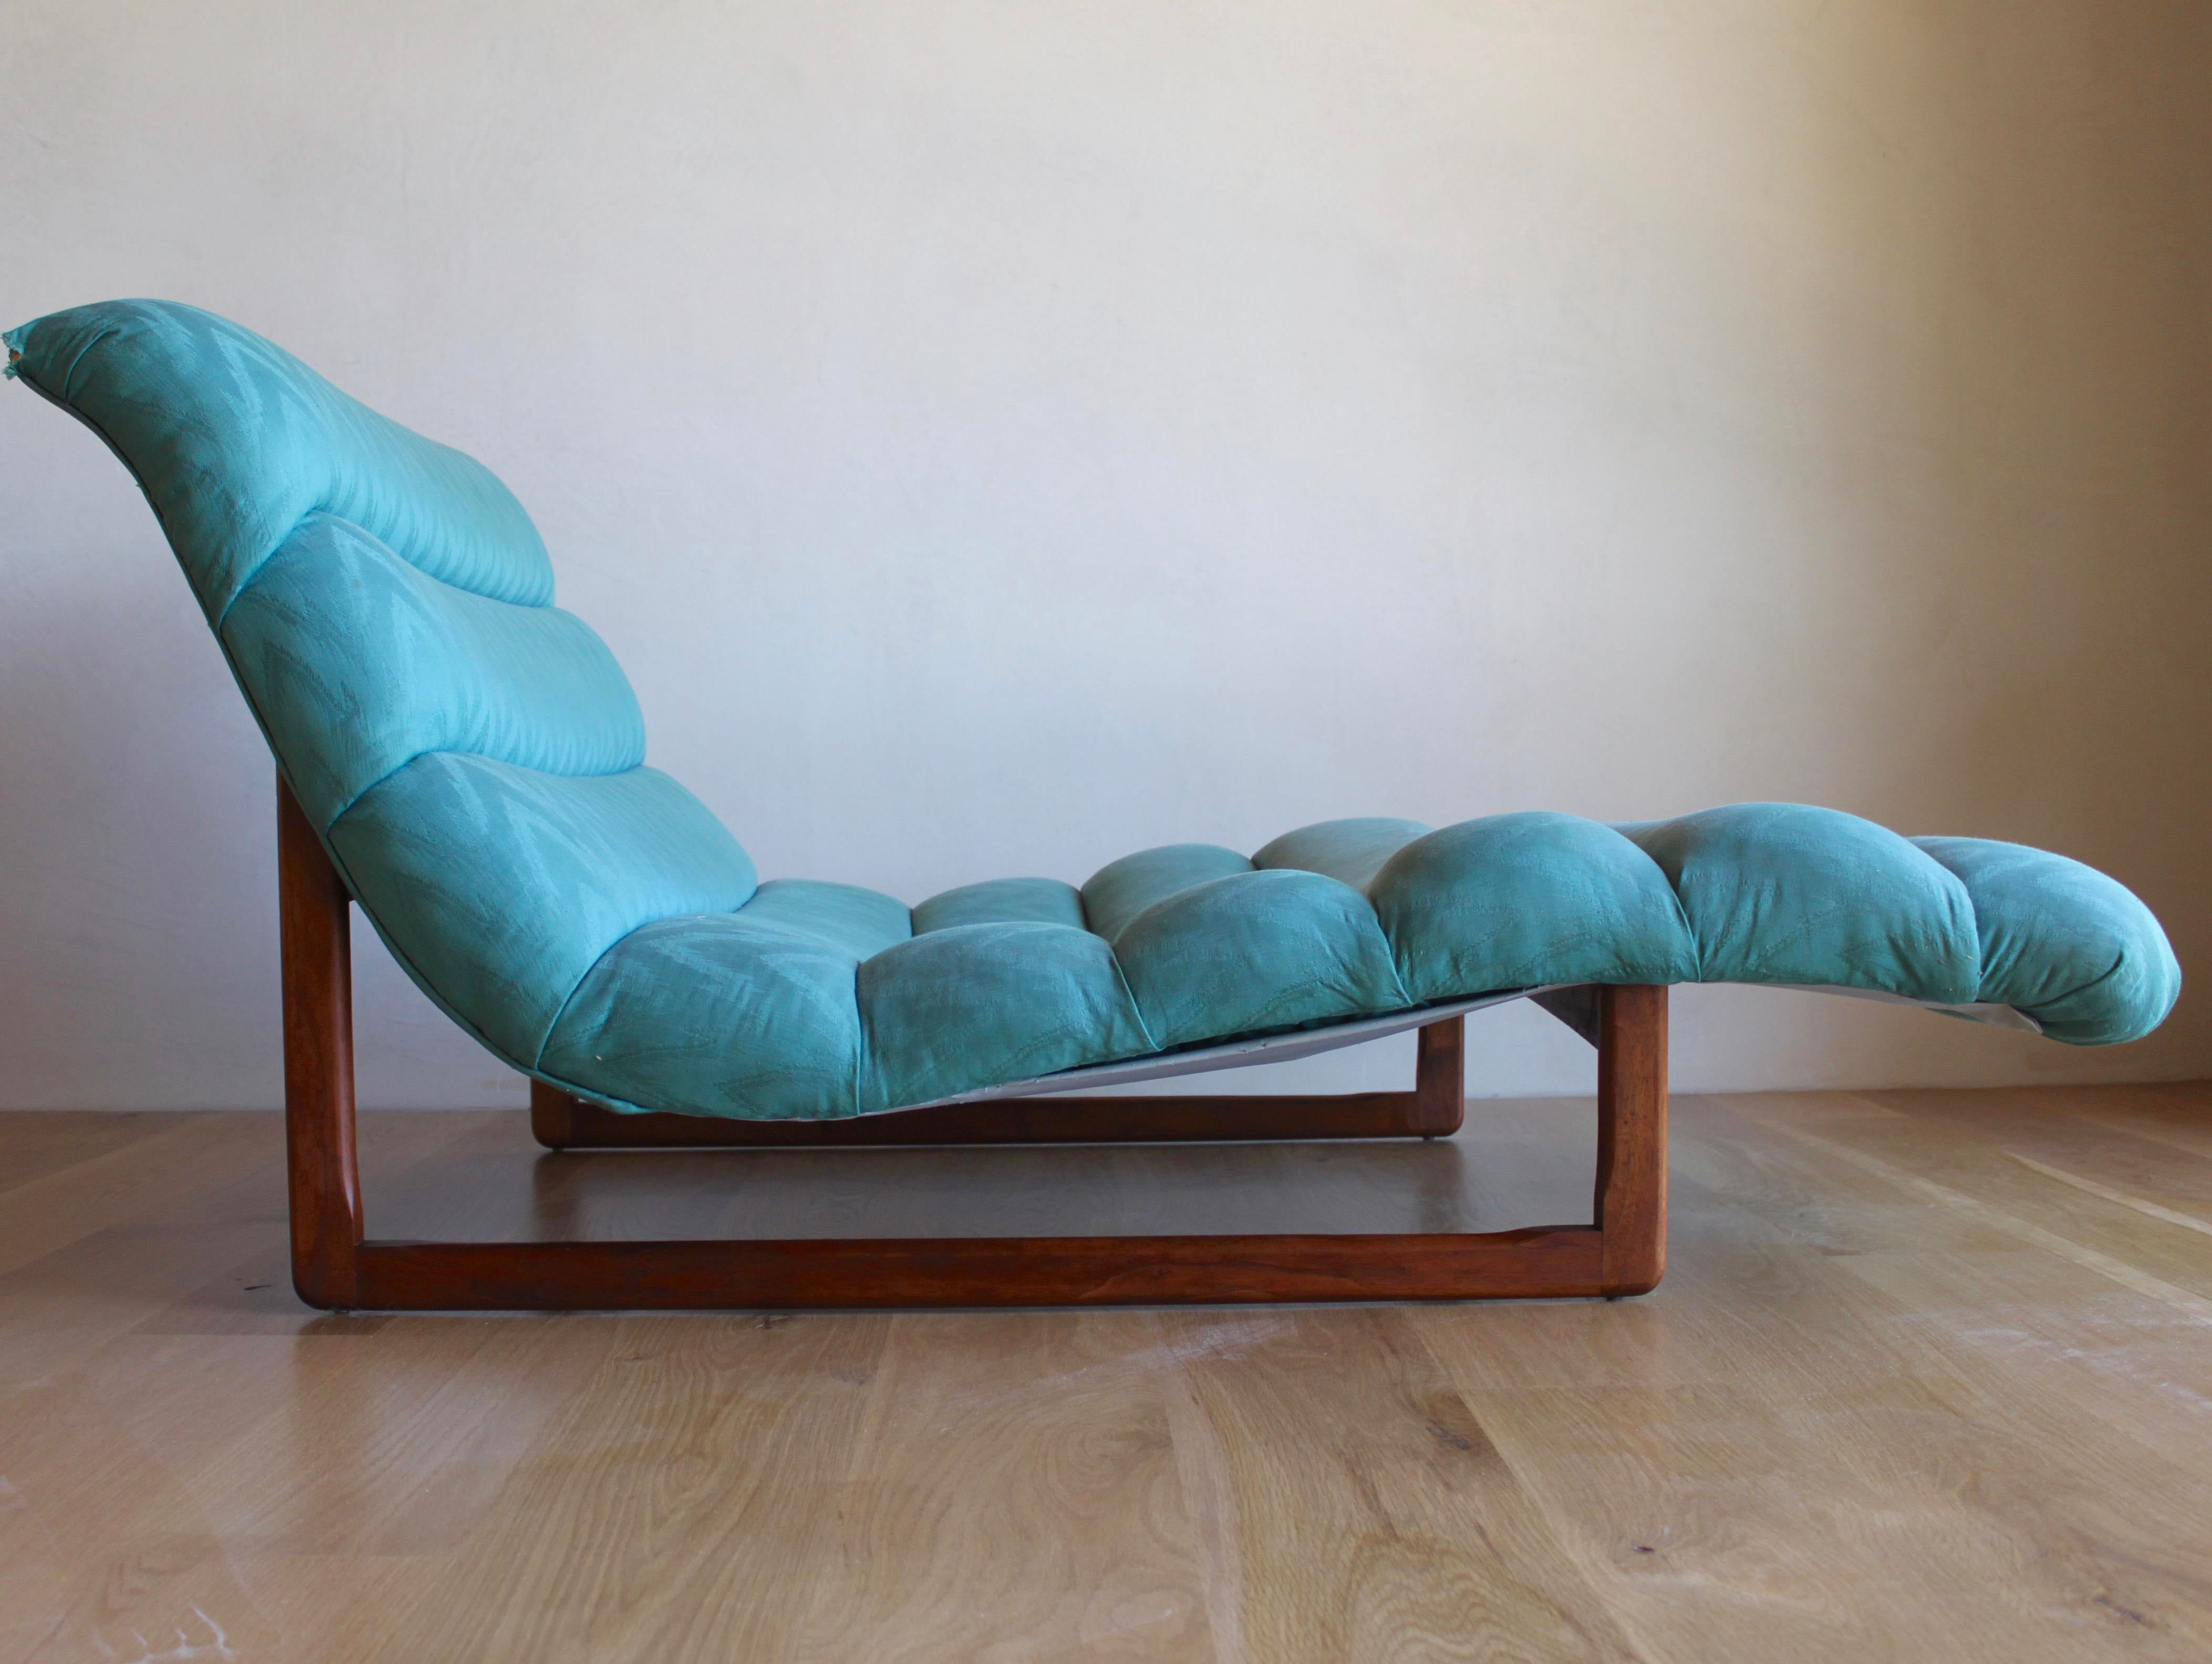 Contemporary Mid Century Adrian Pearsall Attributed Tufted Wide Sculptural Chaise  Lounge Chair For Sale